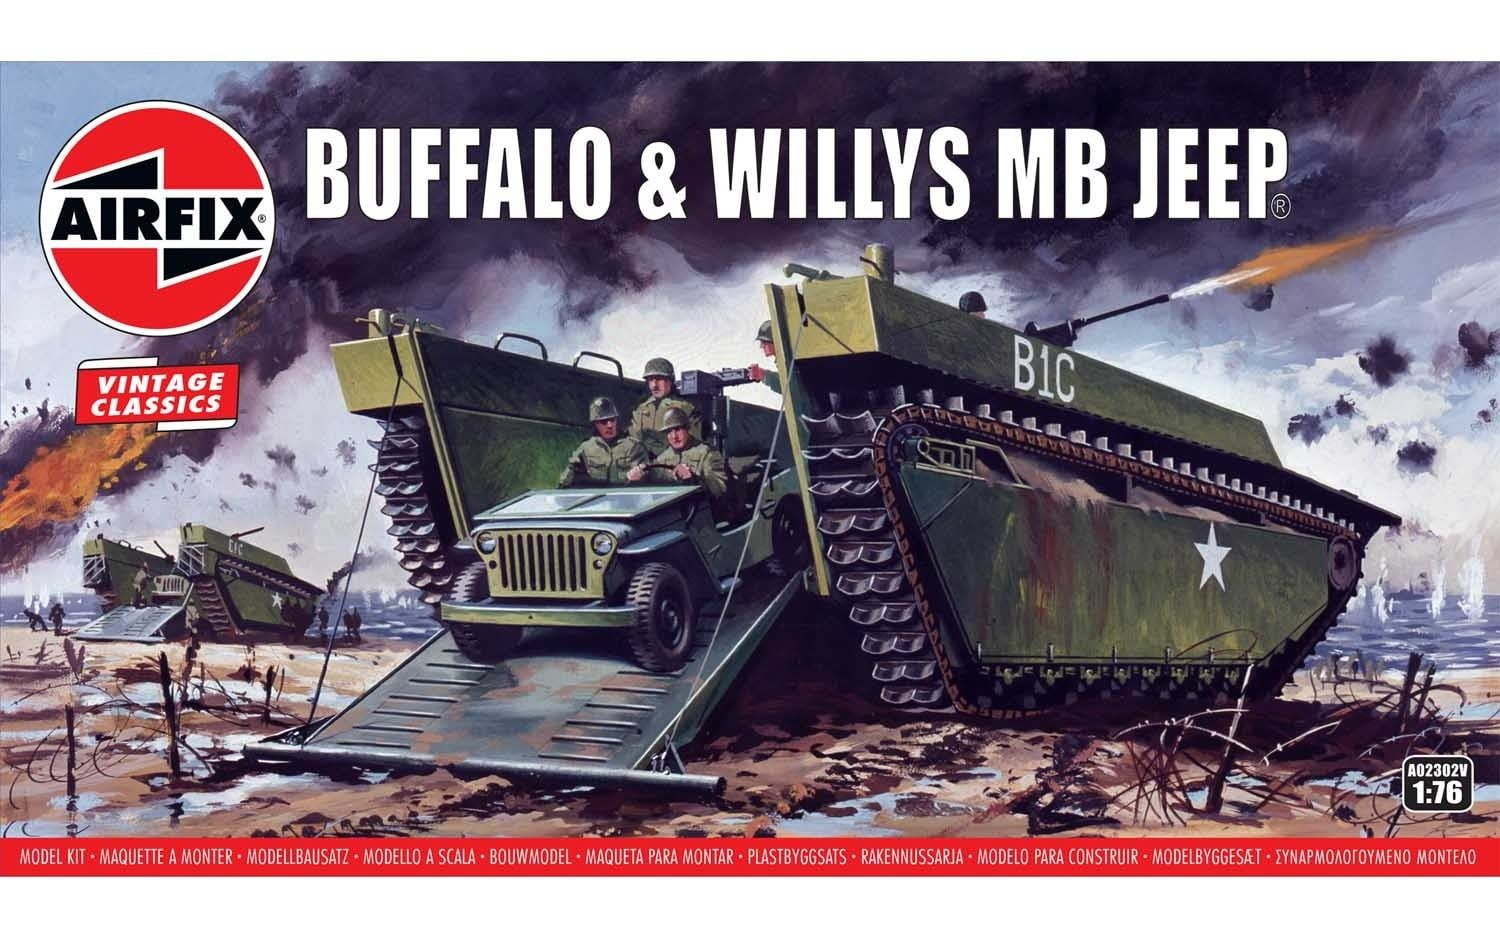 Airfix Buffalo Willys MB Jeep 1:76 Scale Plastic Model Kit